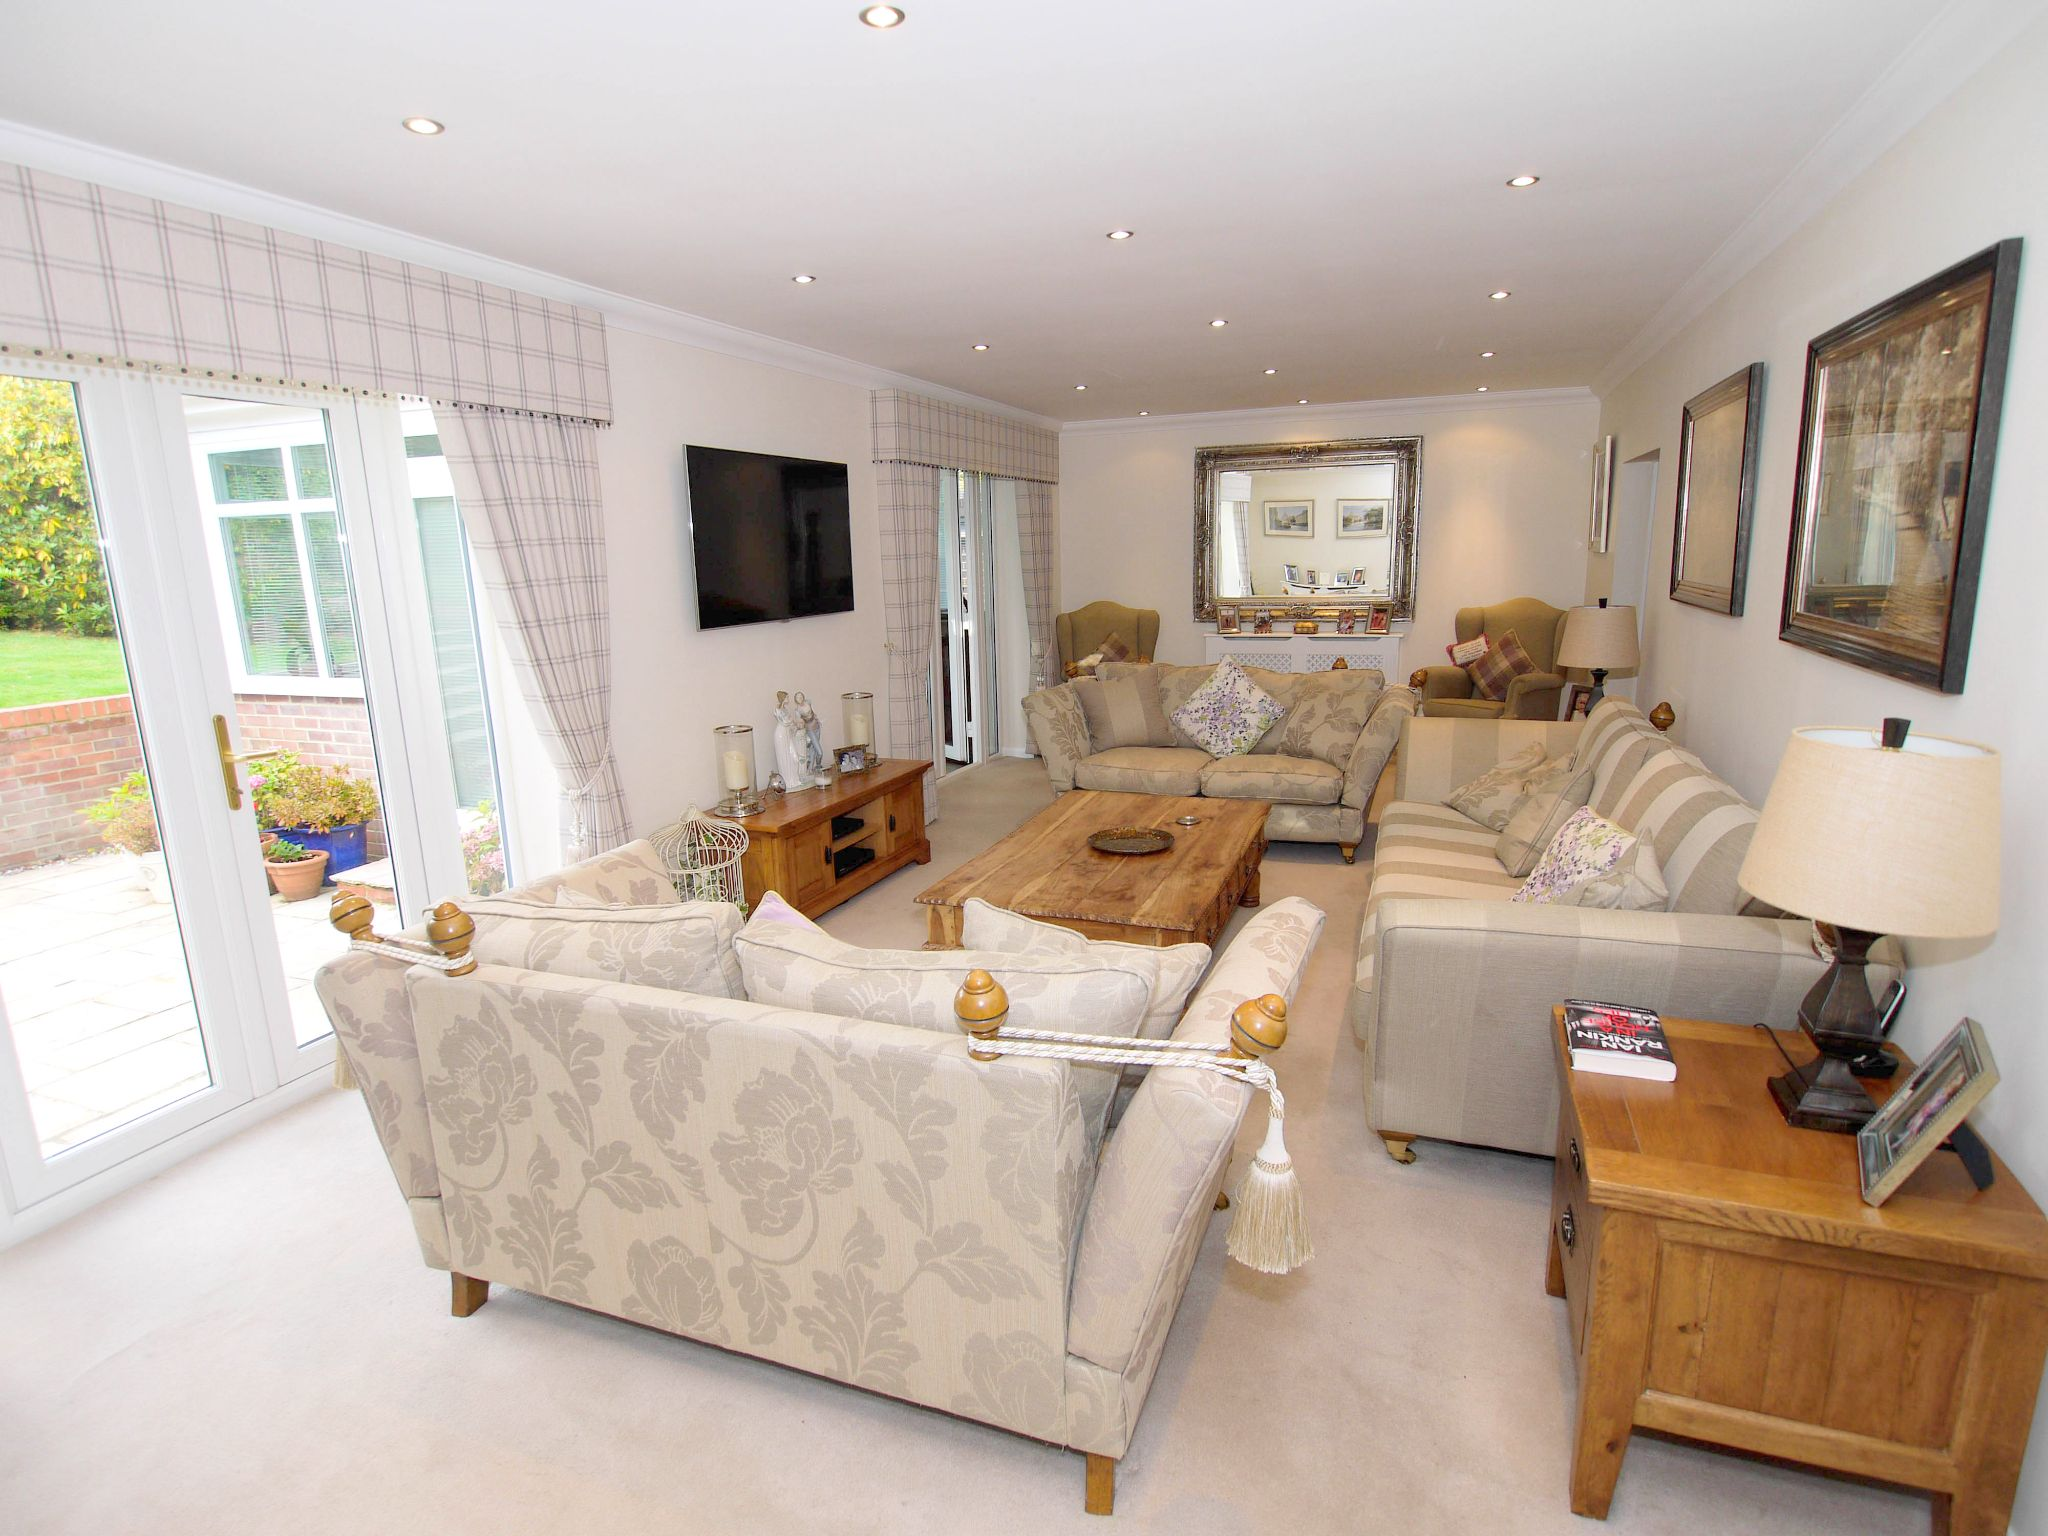 3 bedroom detached house Sold in Sevenoaks - Photograph 3